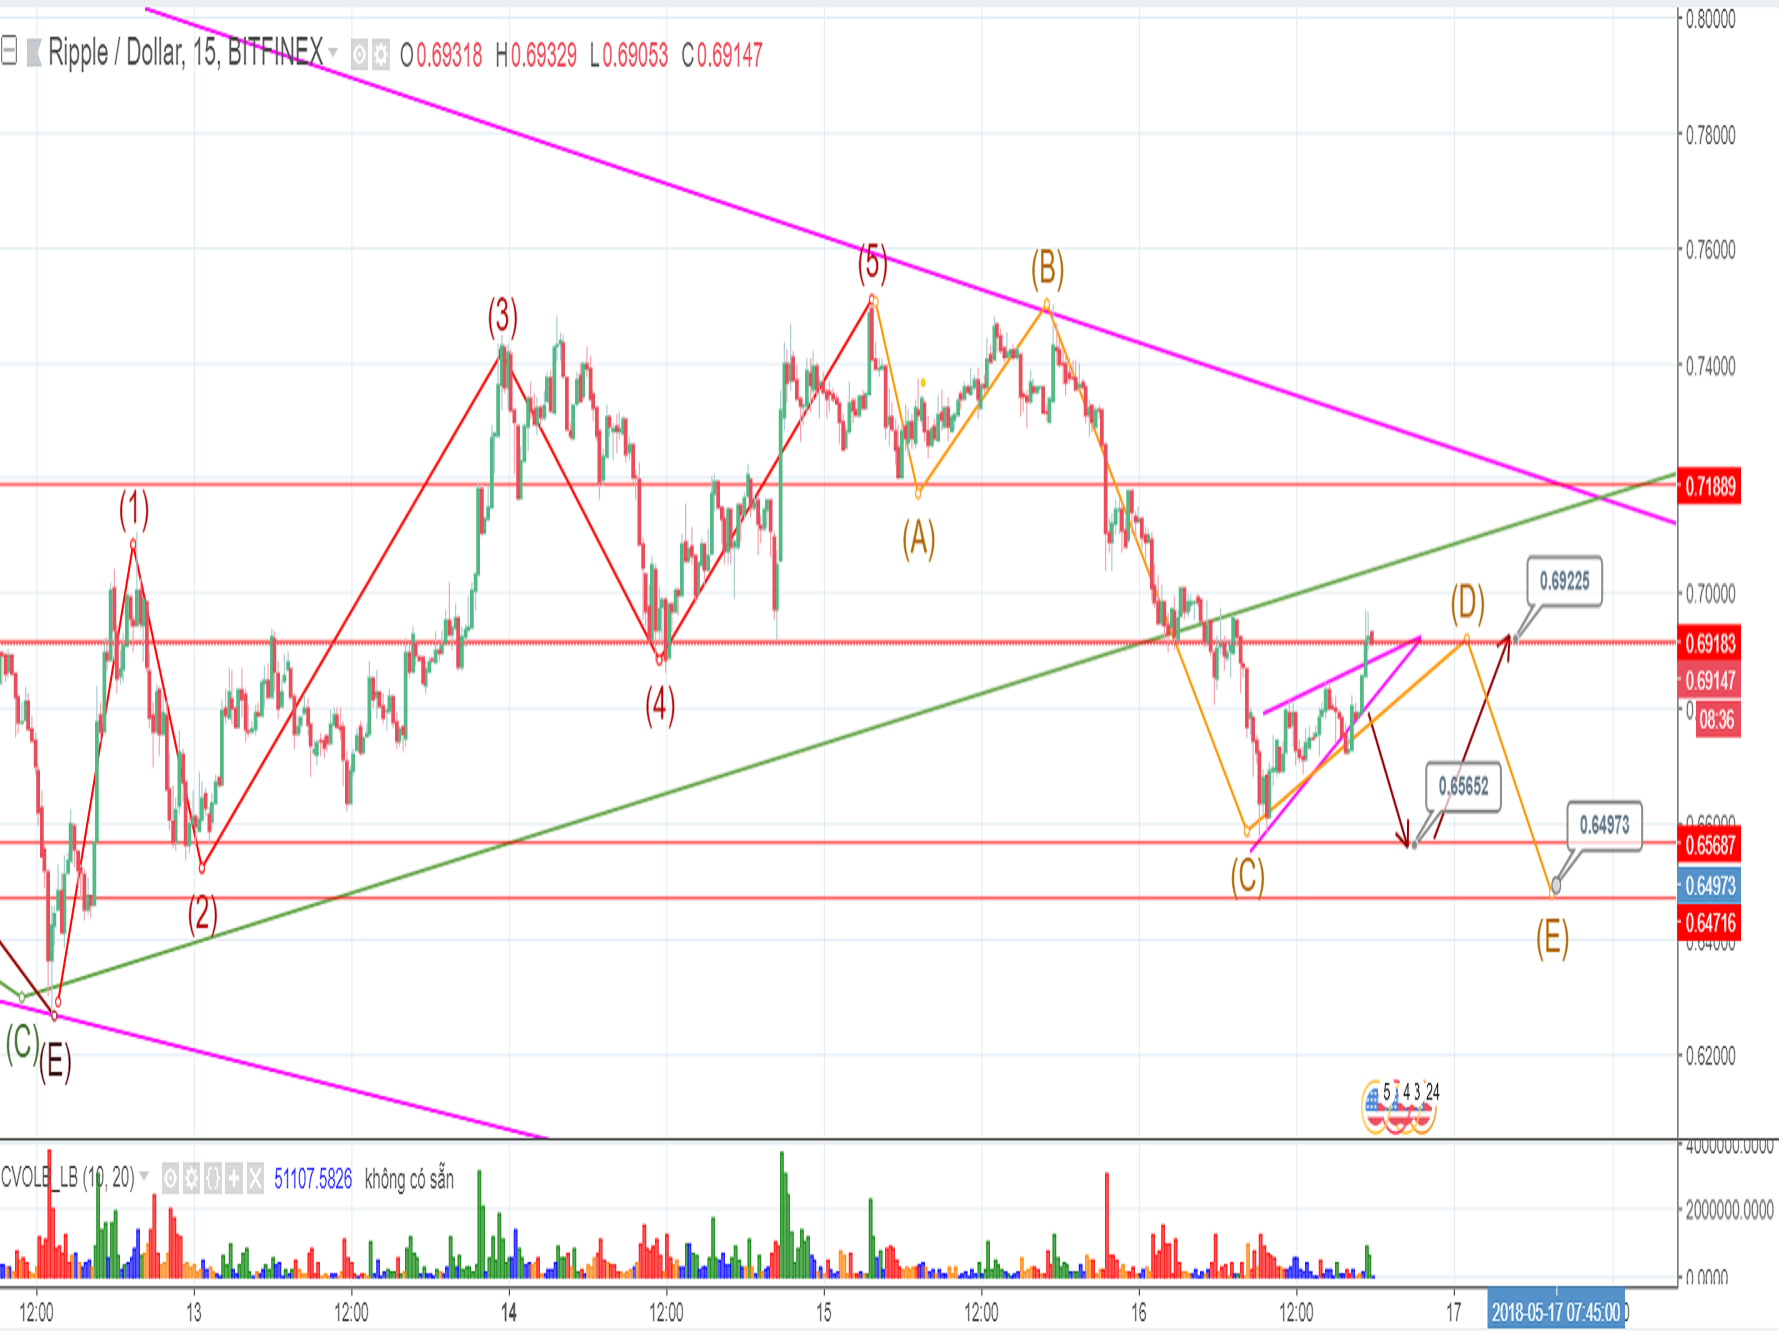 $0.65652 will be the end of Elliott Declining Wave or not?